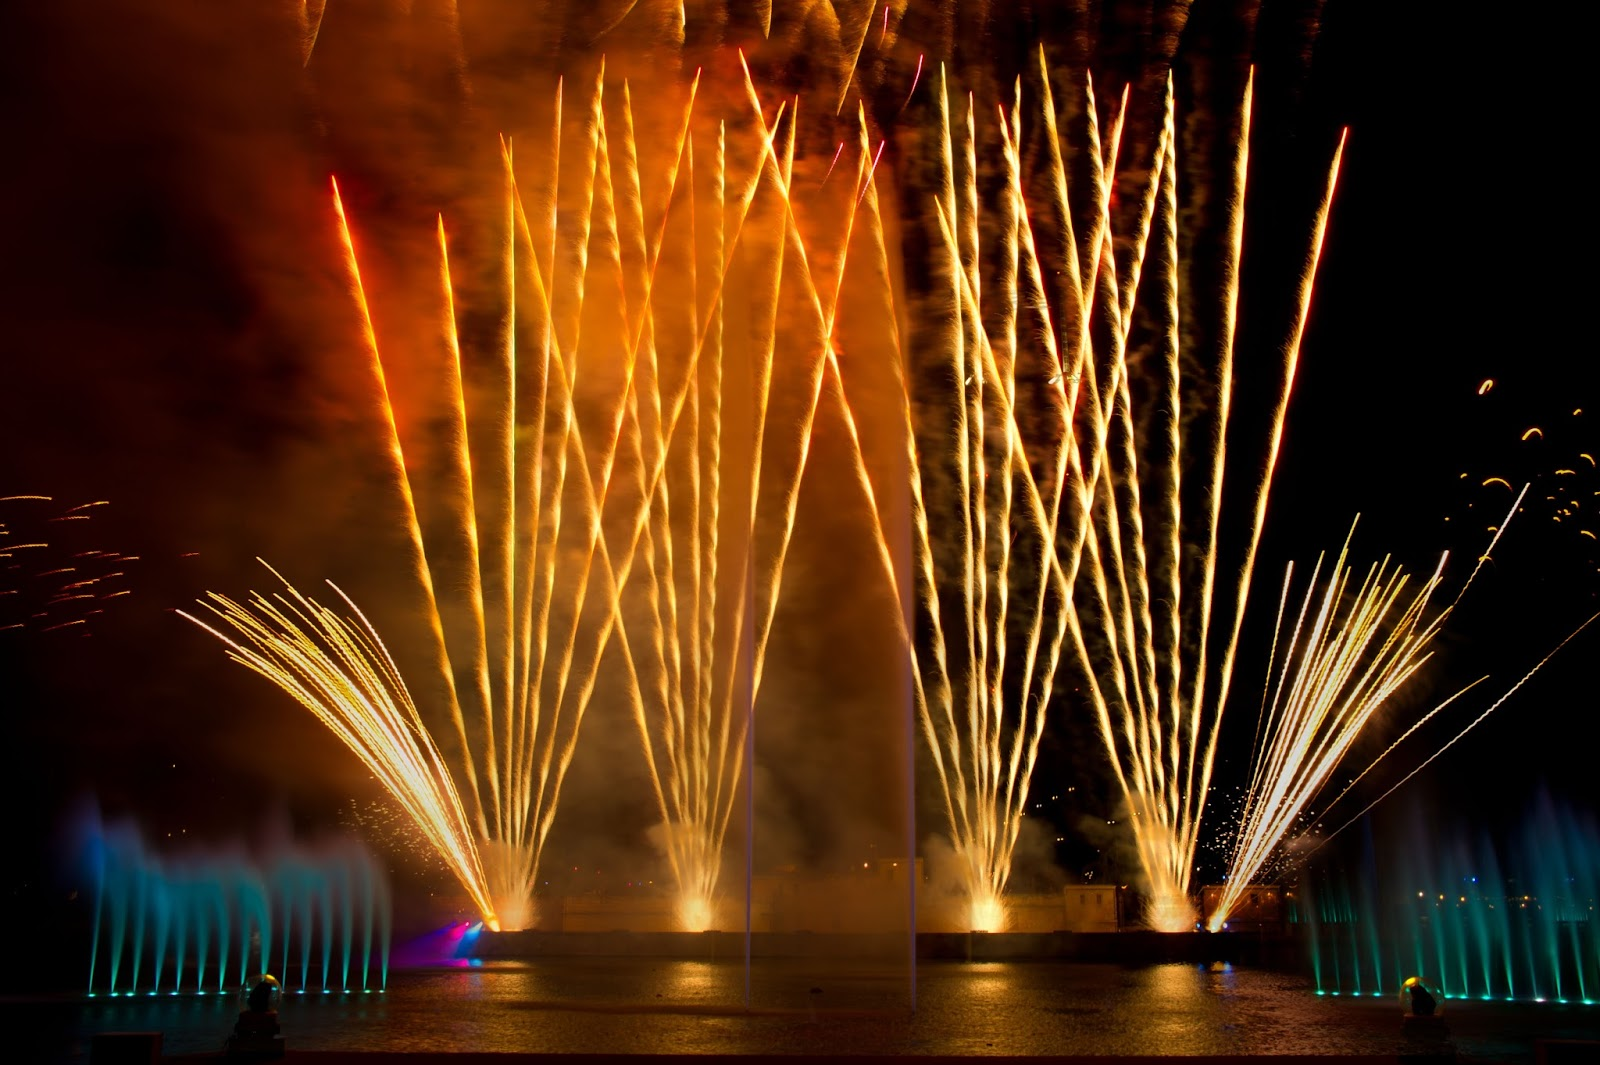 ComeSeeOrlando.com: RING IN THE NEW YEAR AT SEAWORLD ORLANDO